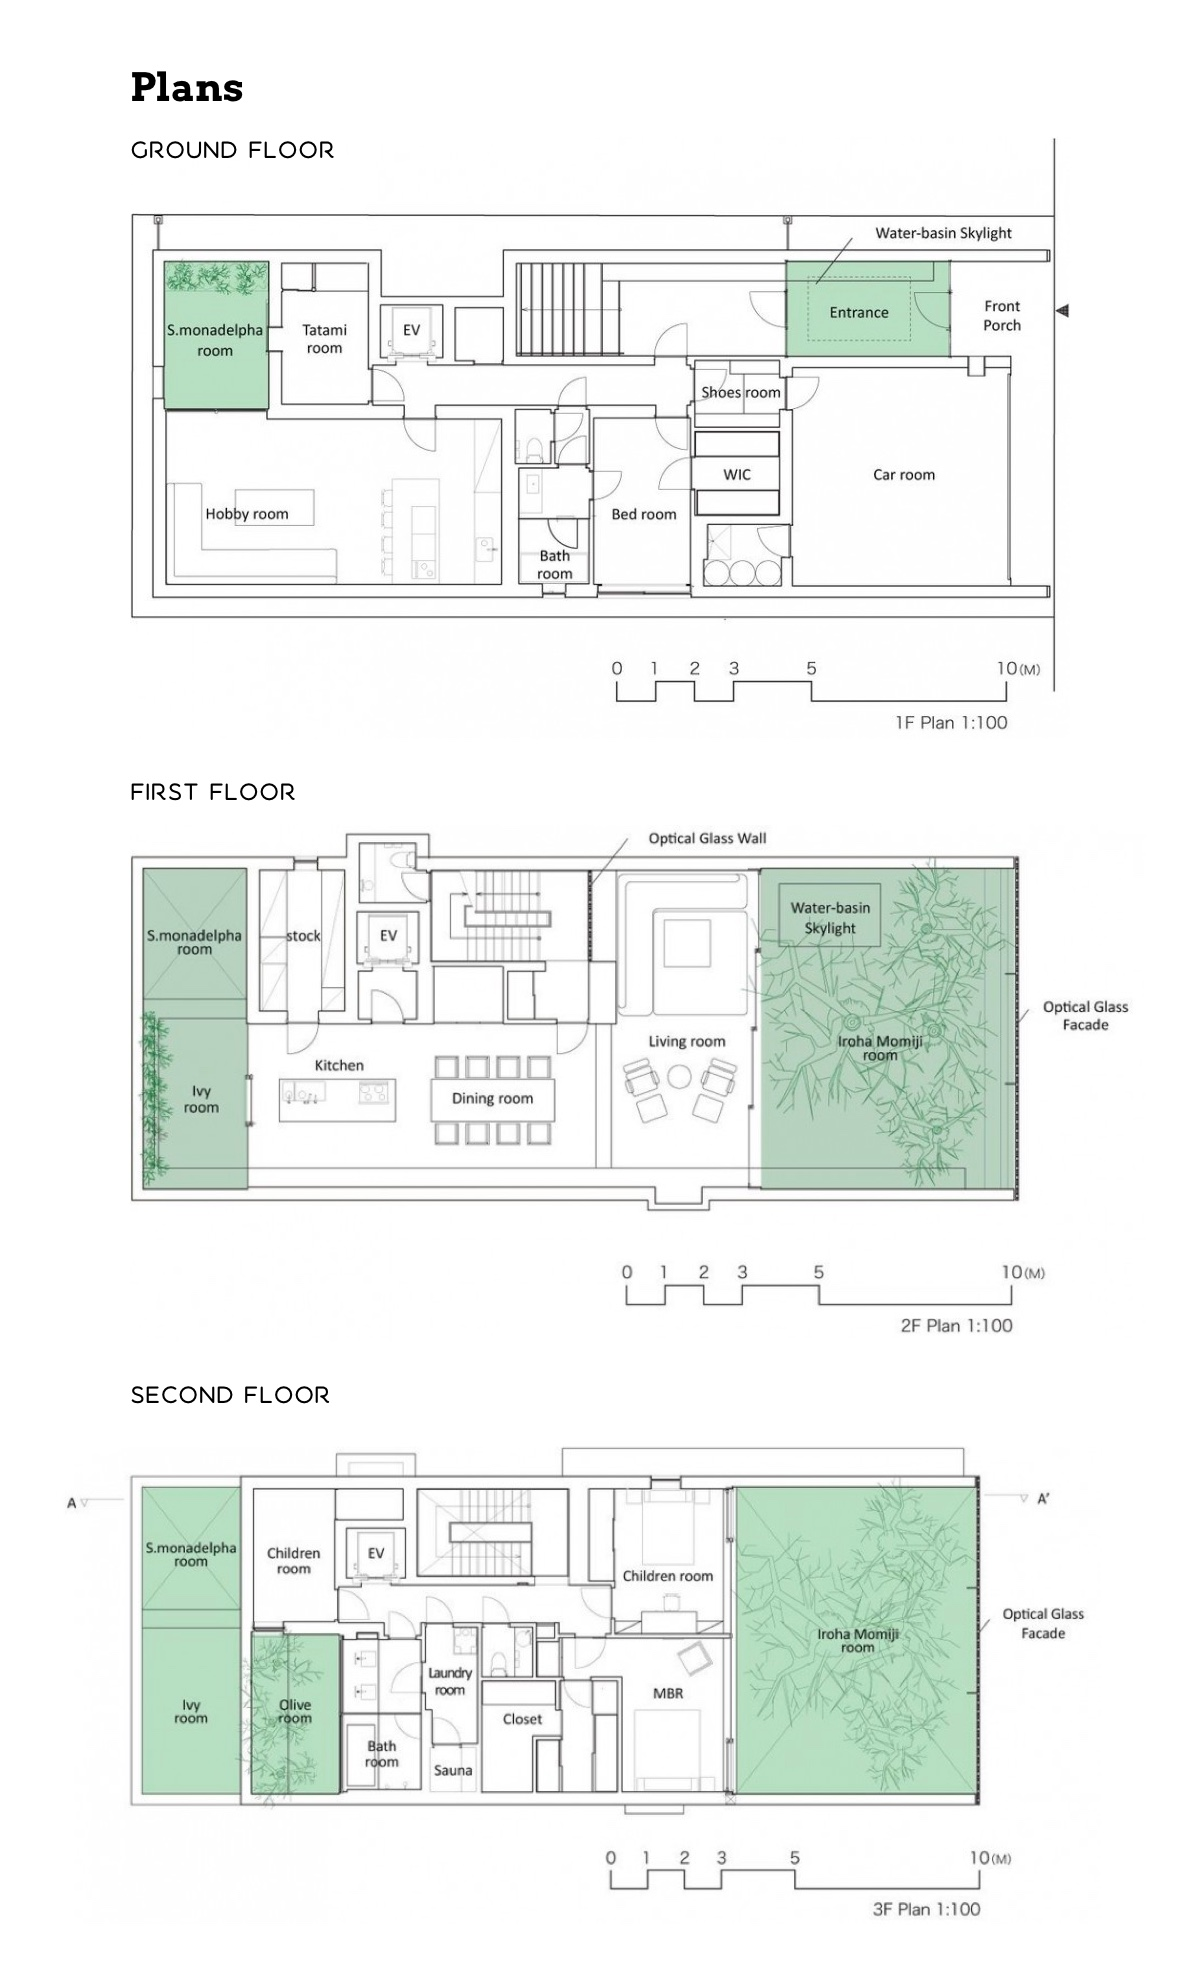 Glass Wall Home Floor Plan - An incredible interior courtyard shielded by optical glass bricks